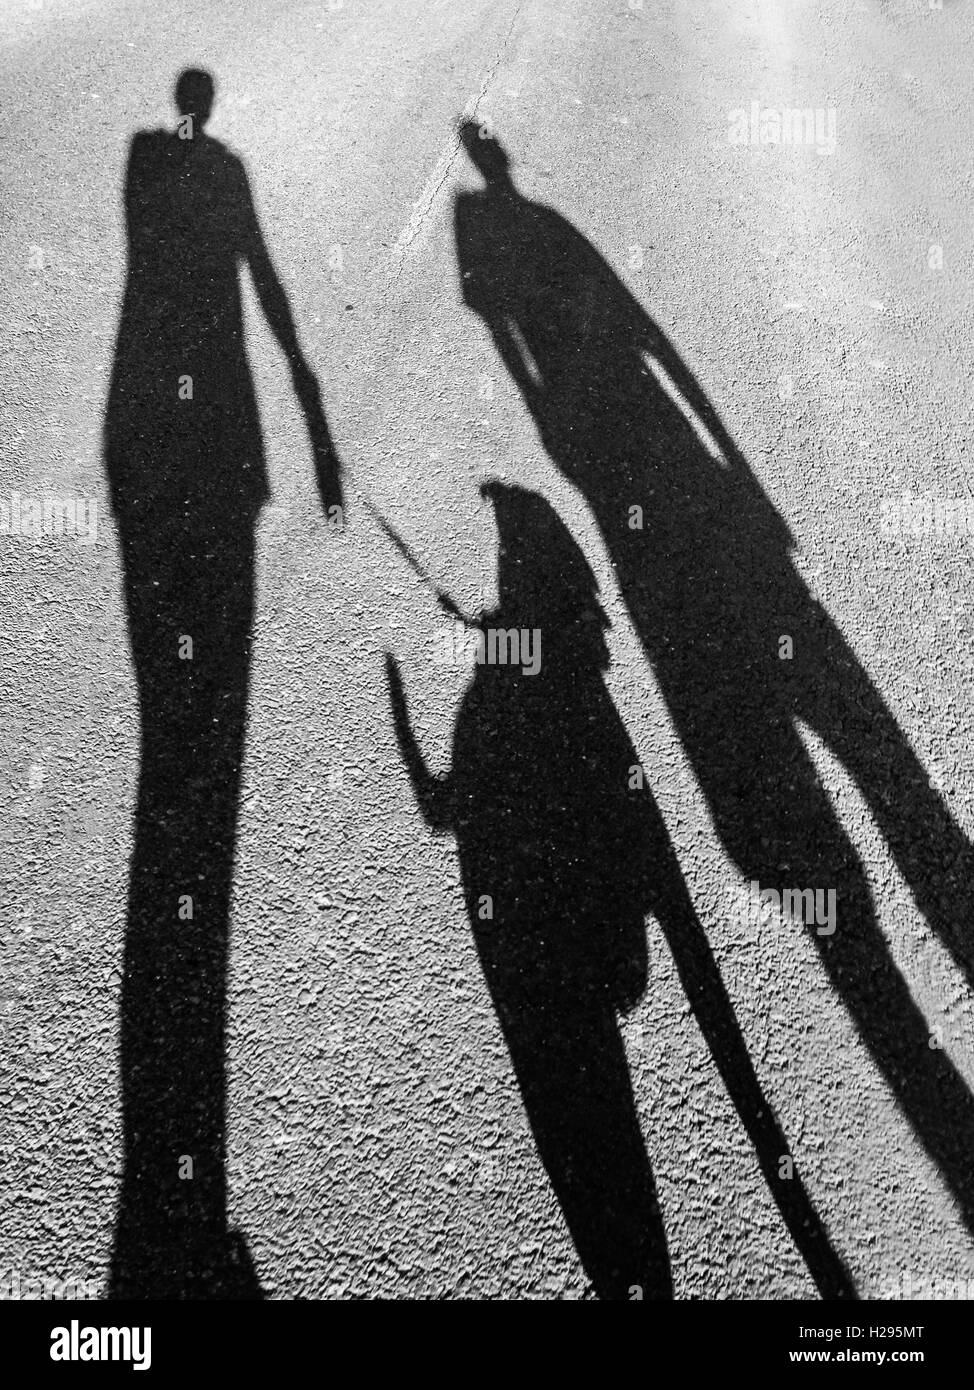 The long shadows of two people walking a dog, Staffordshire Bull Terrier. mobilestock - Stock Image